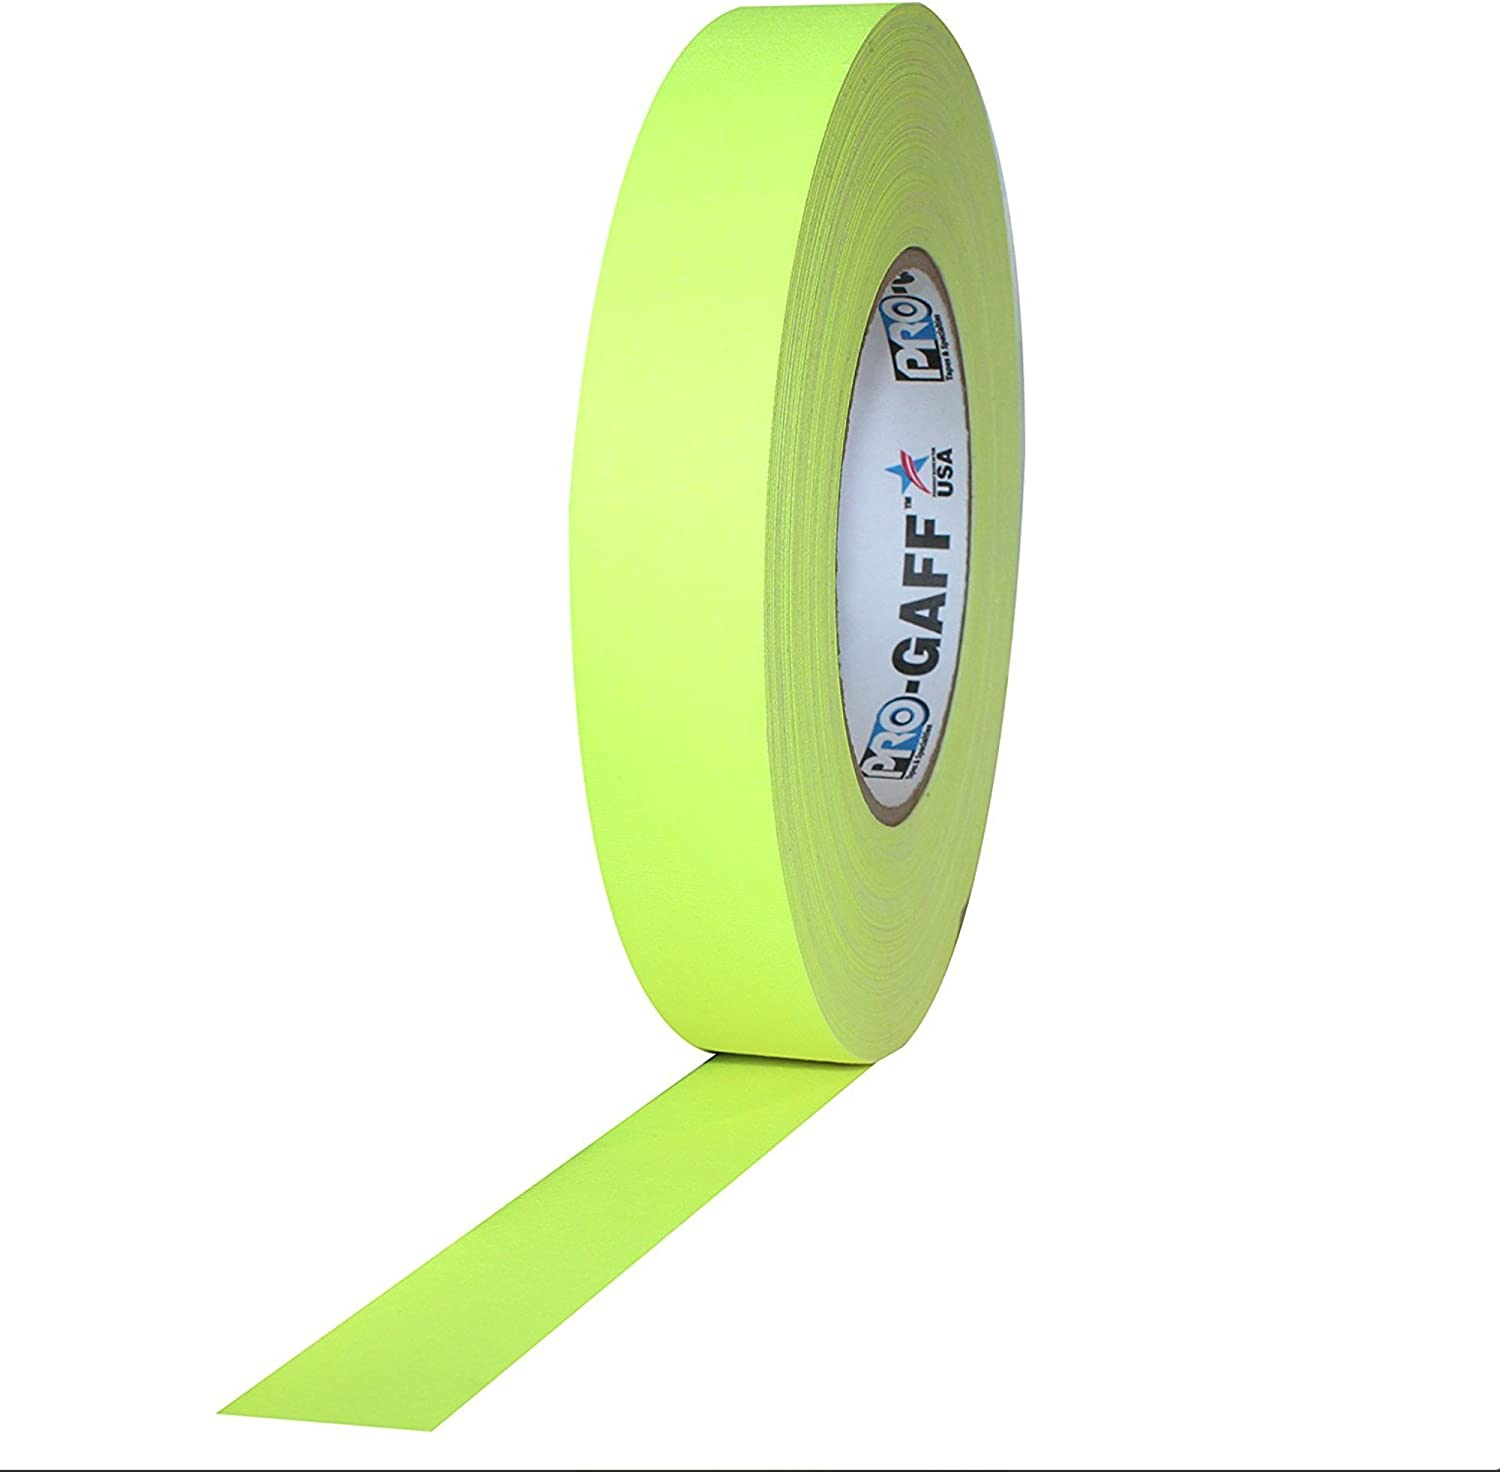 1 Width ProTapes Pro Gaff Premium Matte Cloth Gaffers Tape With Rubber Adhesive Fluorescent Orange Pack of 1 50 yds Length x